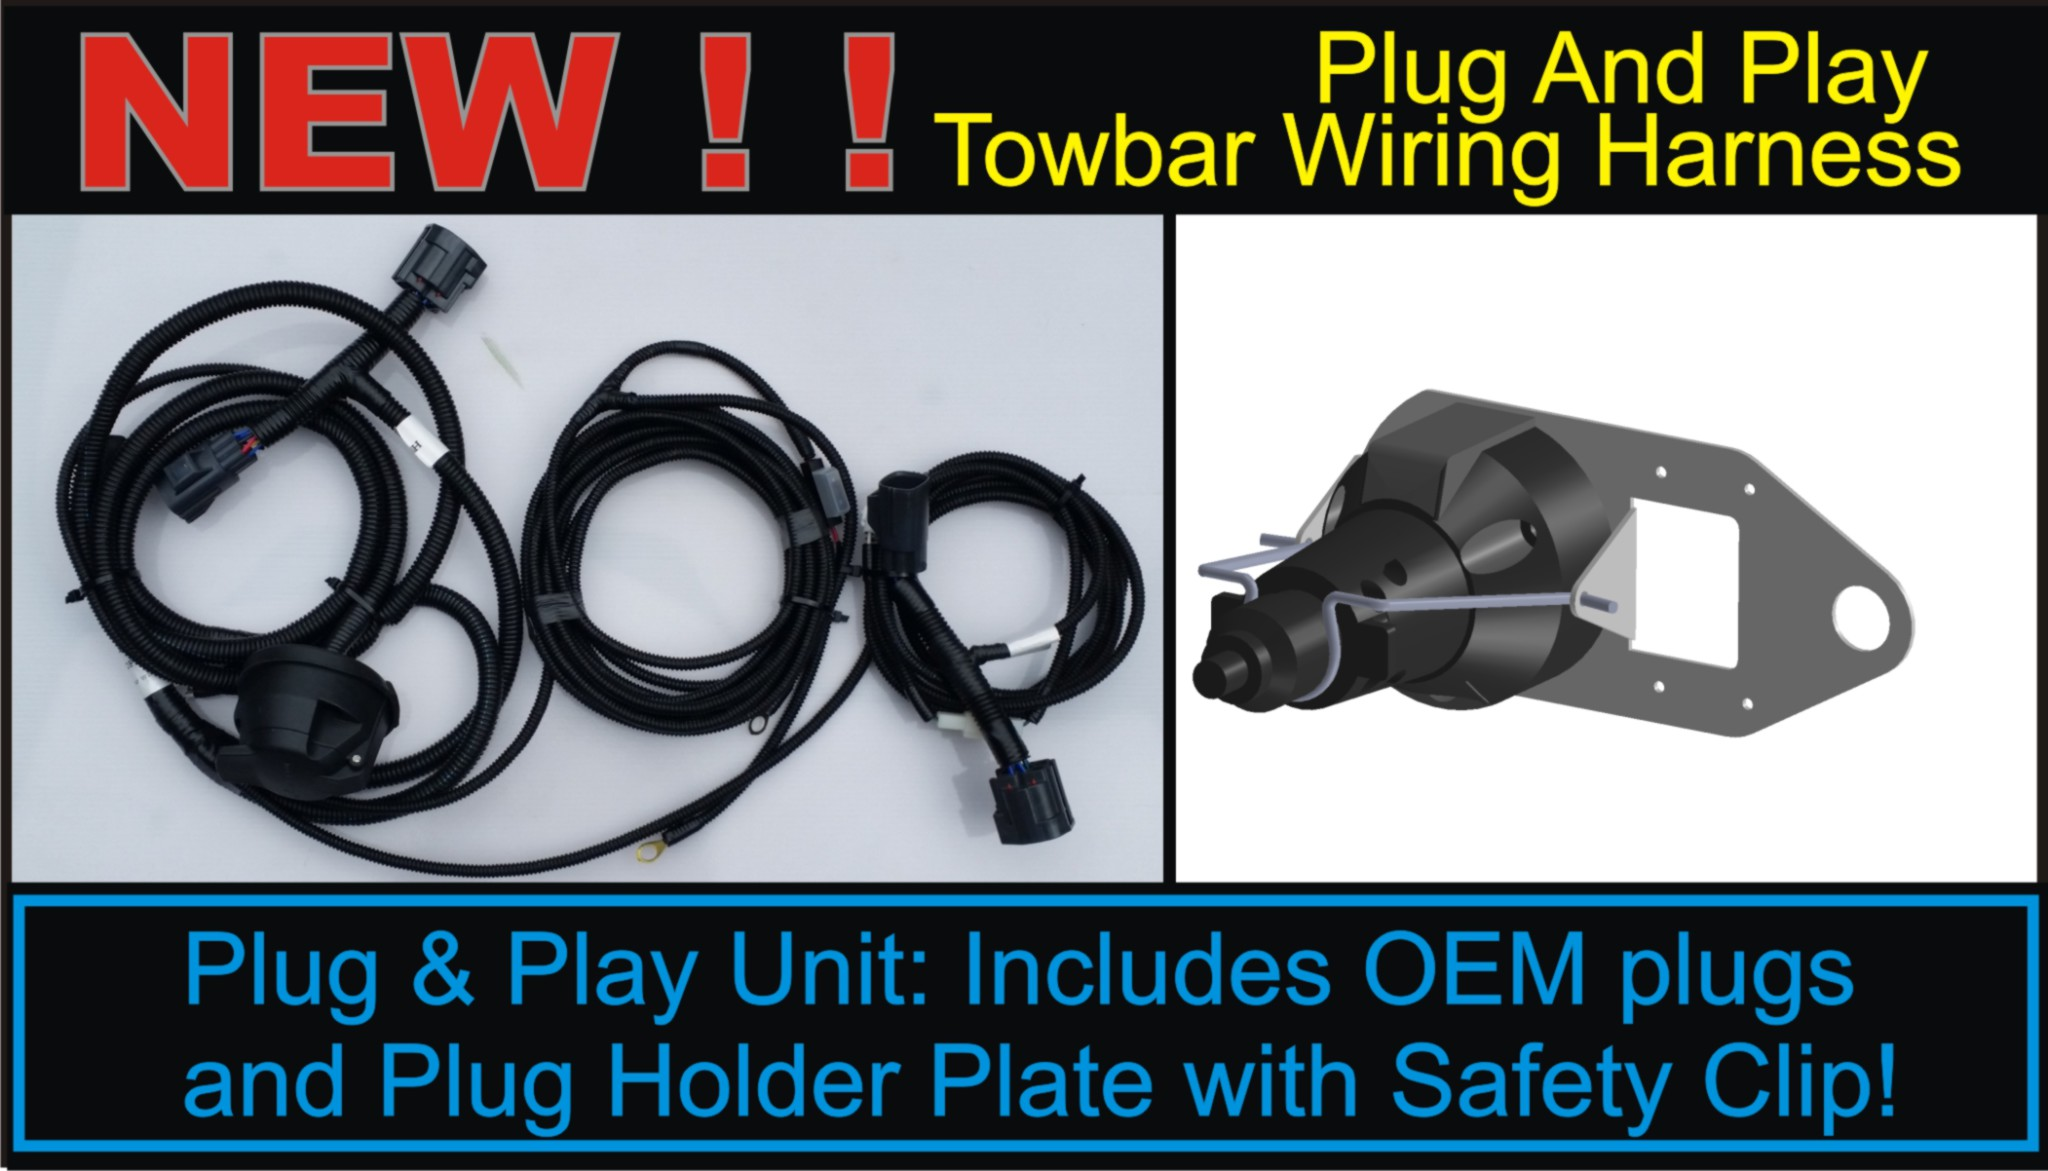 Excellent Wrangler Towbar Harness Plug Play Patcor Offroad Wiring Digital Resources Timewpwclawcorpcom